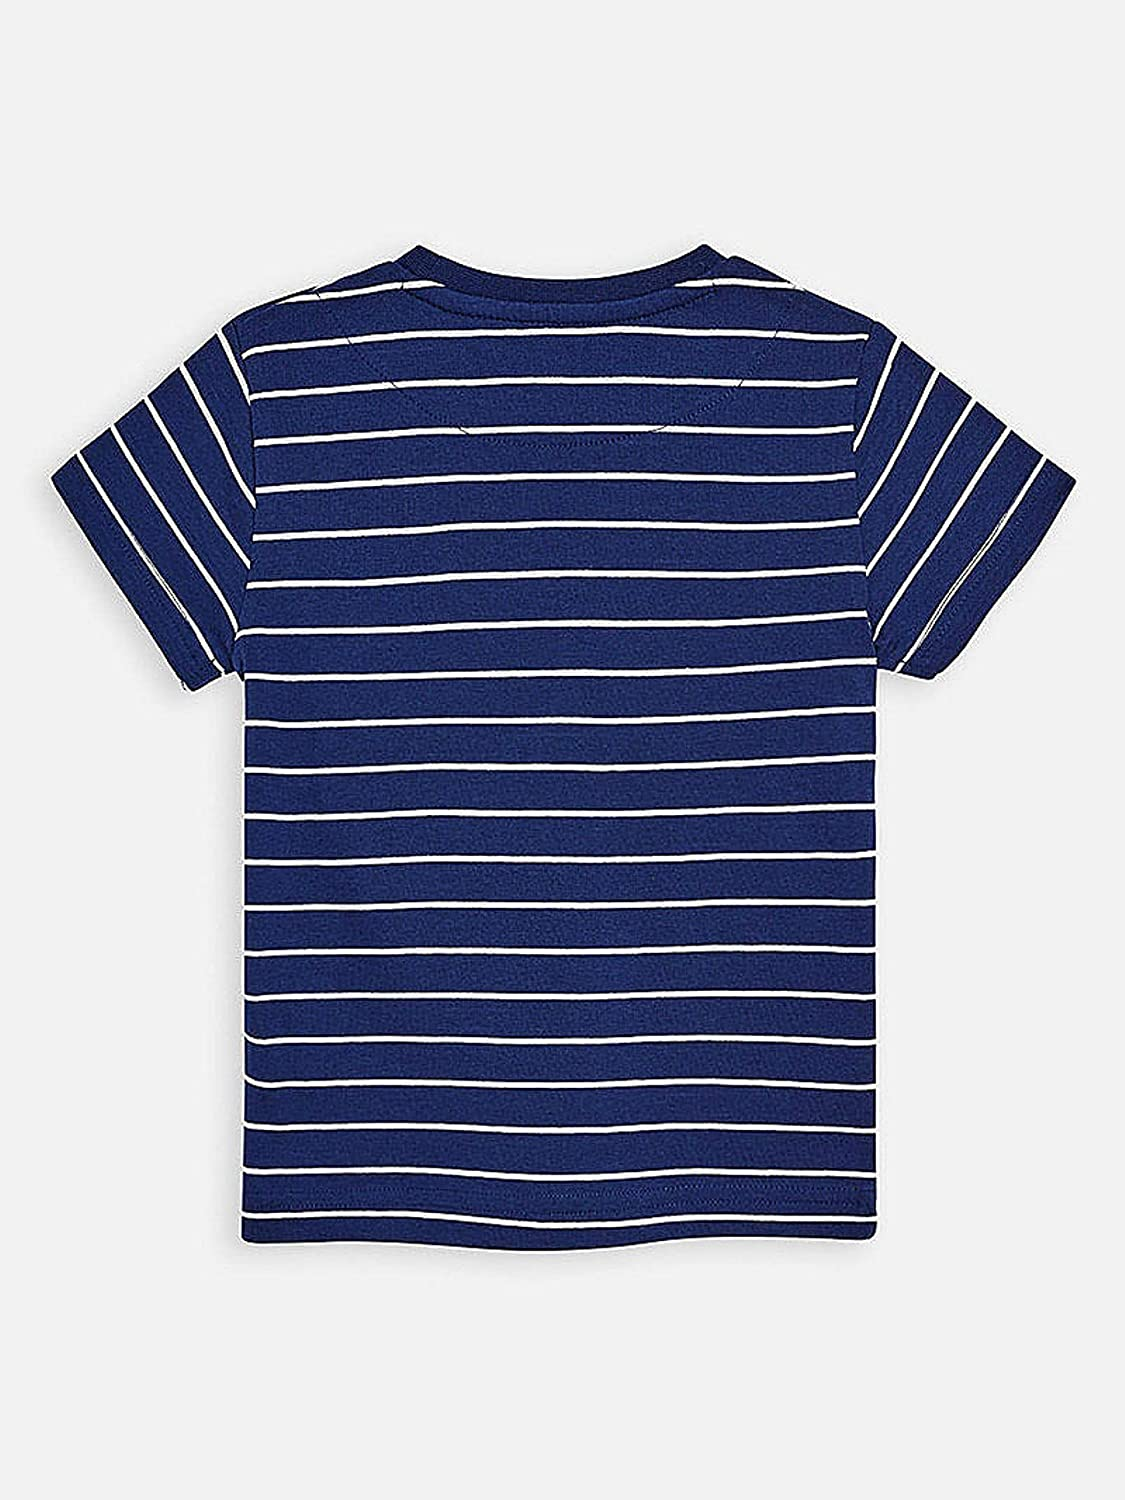 3064 Mayoral Stripes s//s t-Shirt for Boys Navy